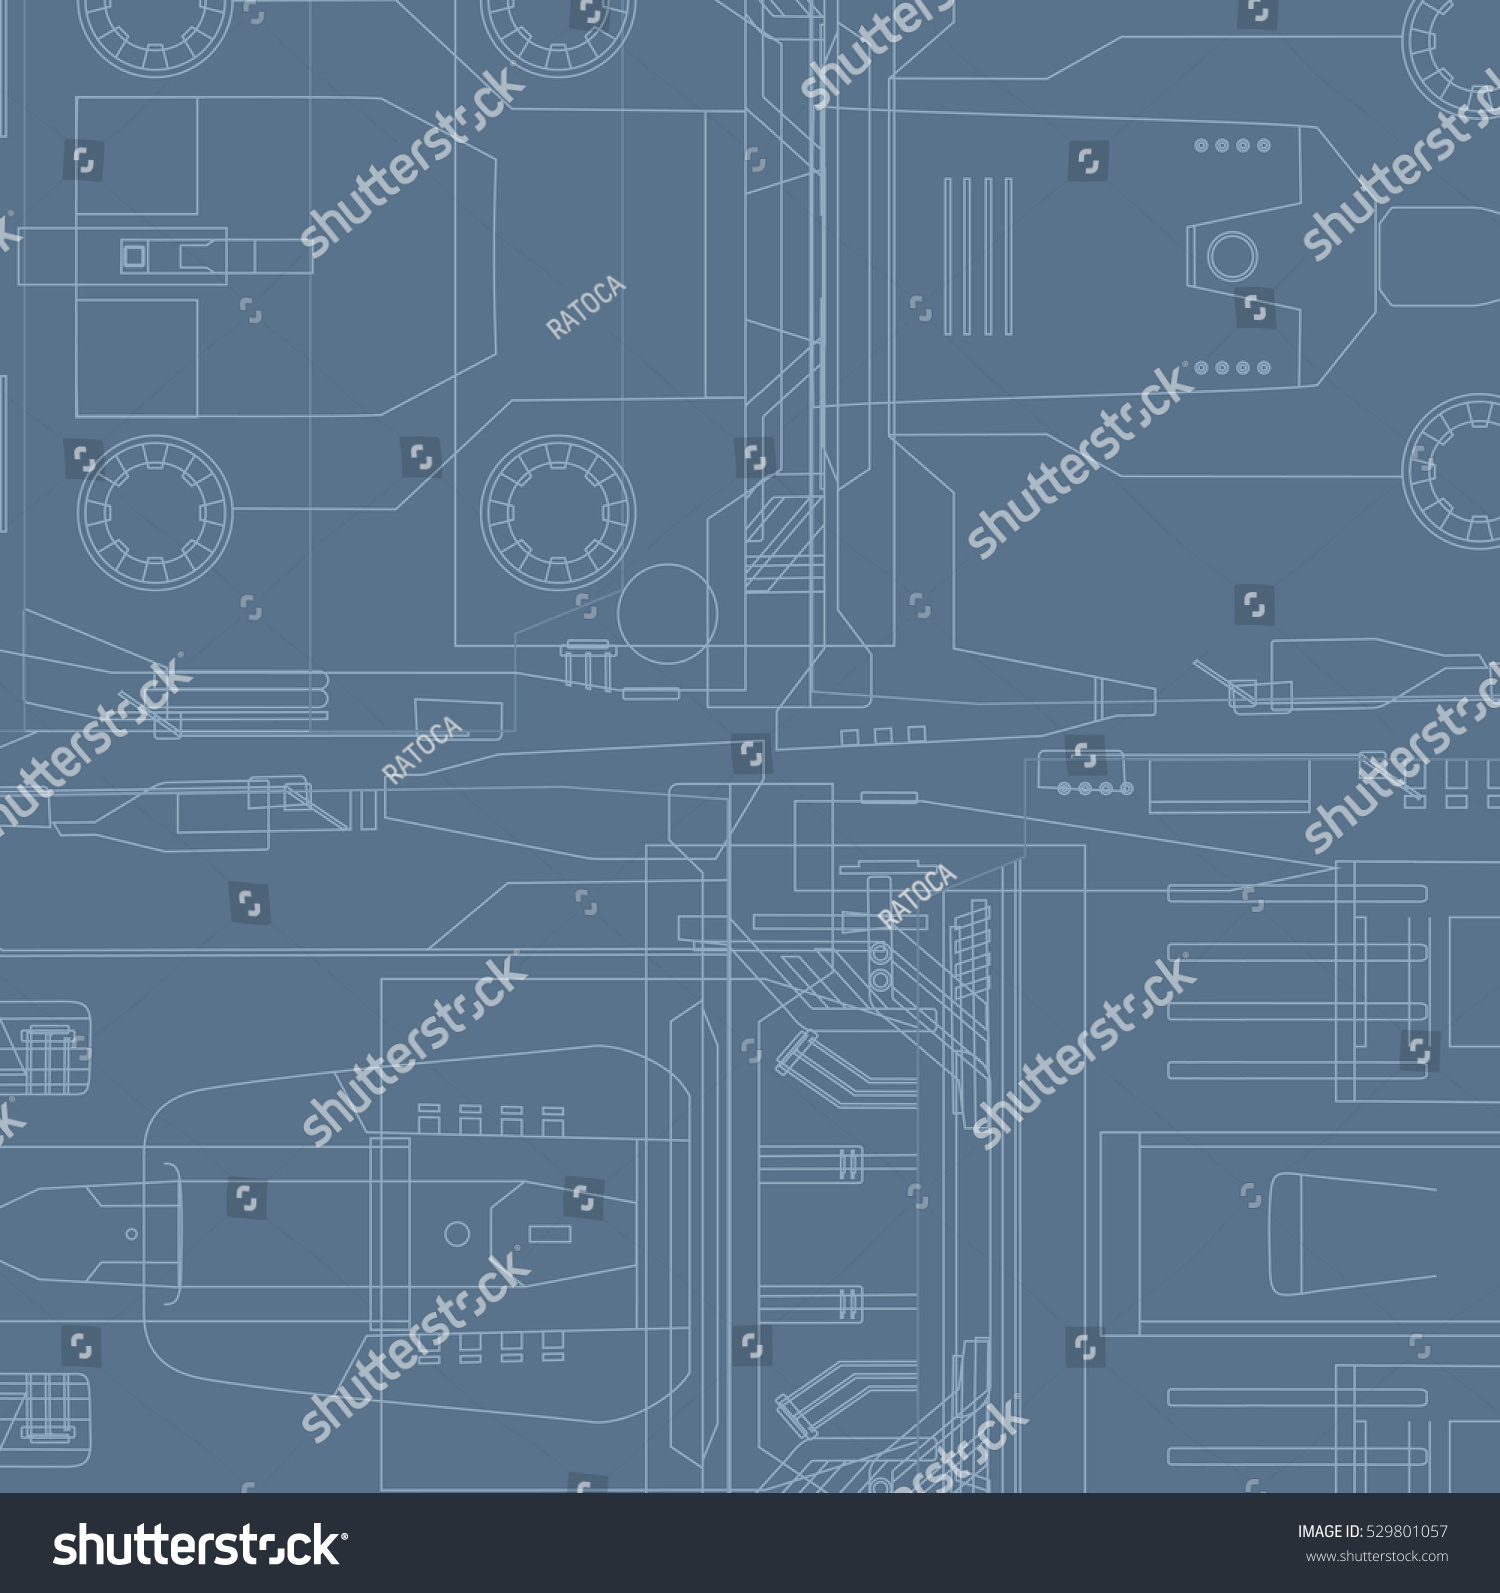 Industrial Schematic Background Explore Schematic Wiring Diagram \u2022  Encoder Wiring Examples Industrial Wiring Schematics Examples